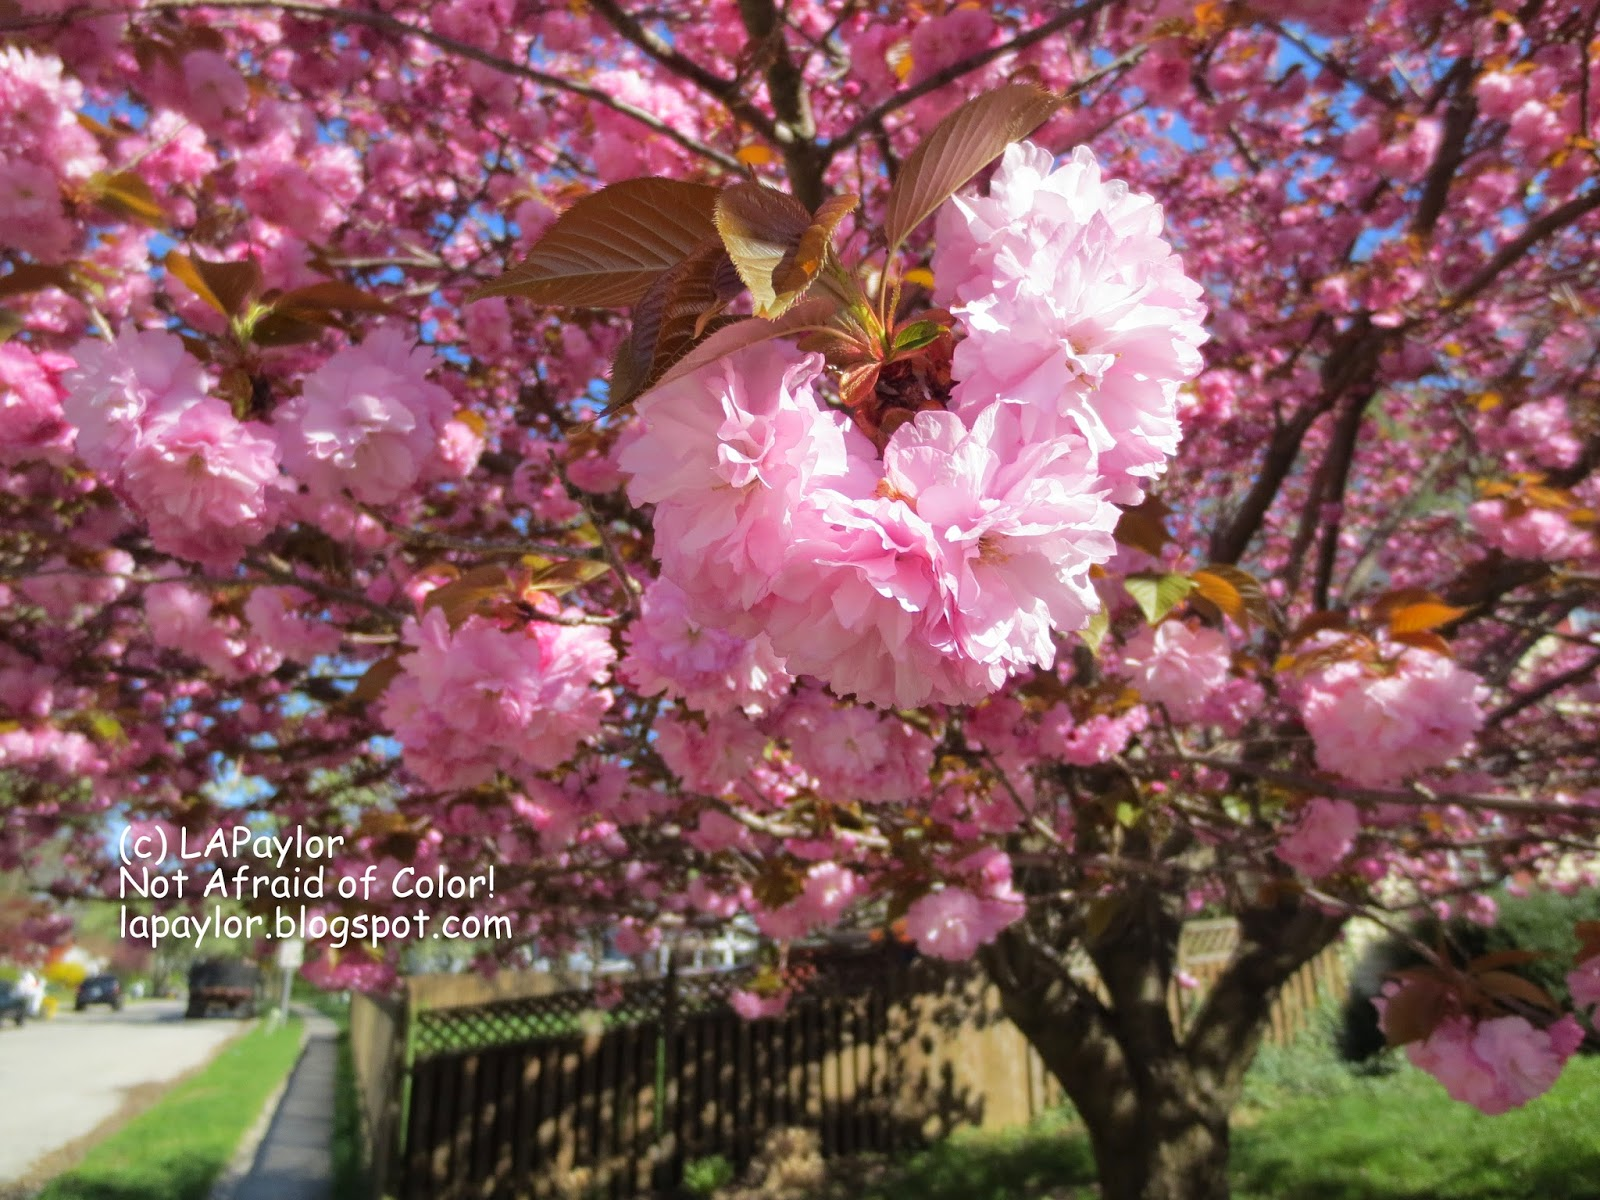 Trees that have pink flowers images flower decoration ideas trees that have pink flowers choice image flower decoration ideas trees that have pink flowers choice mightylinksfo